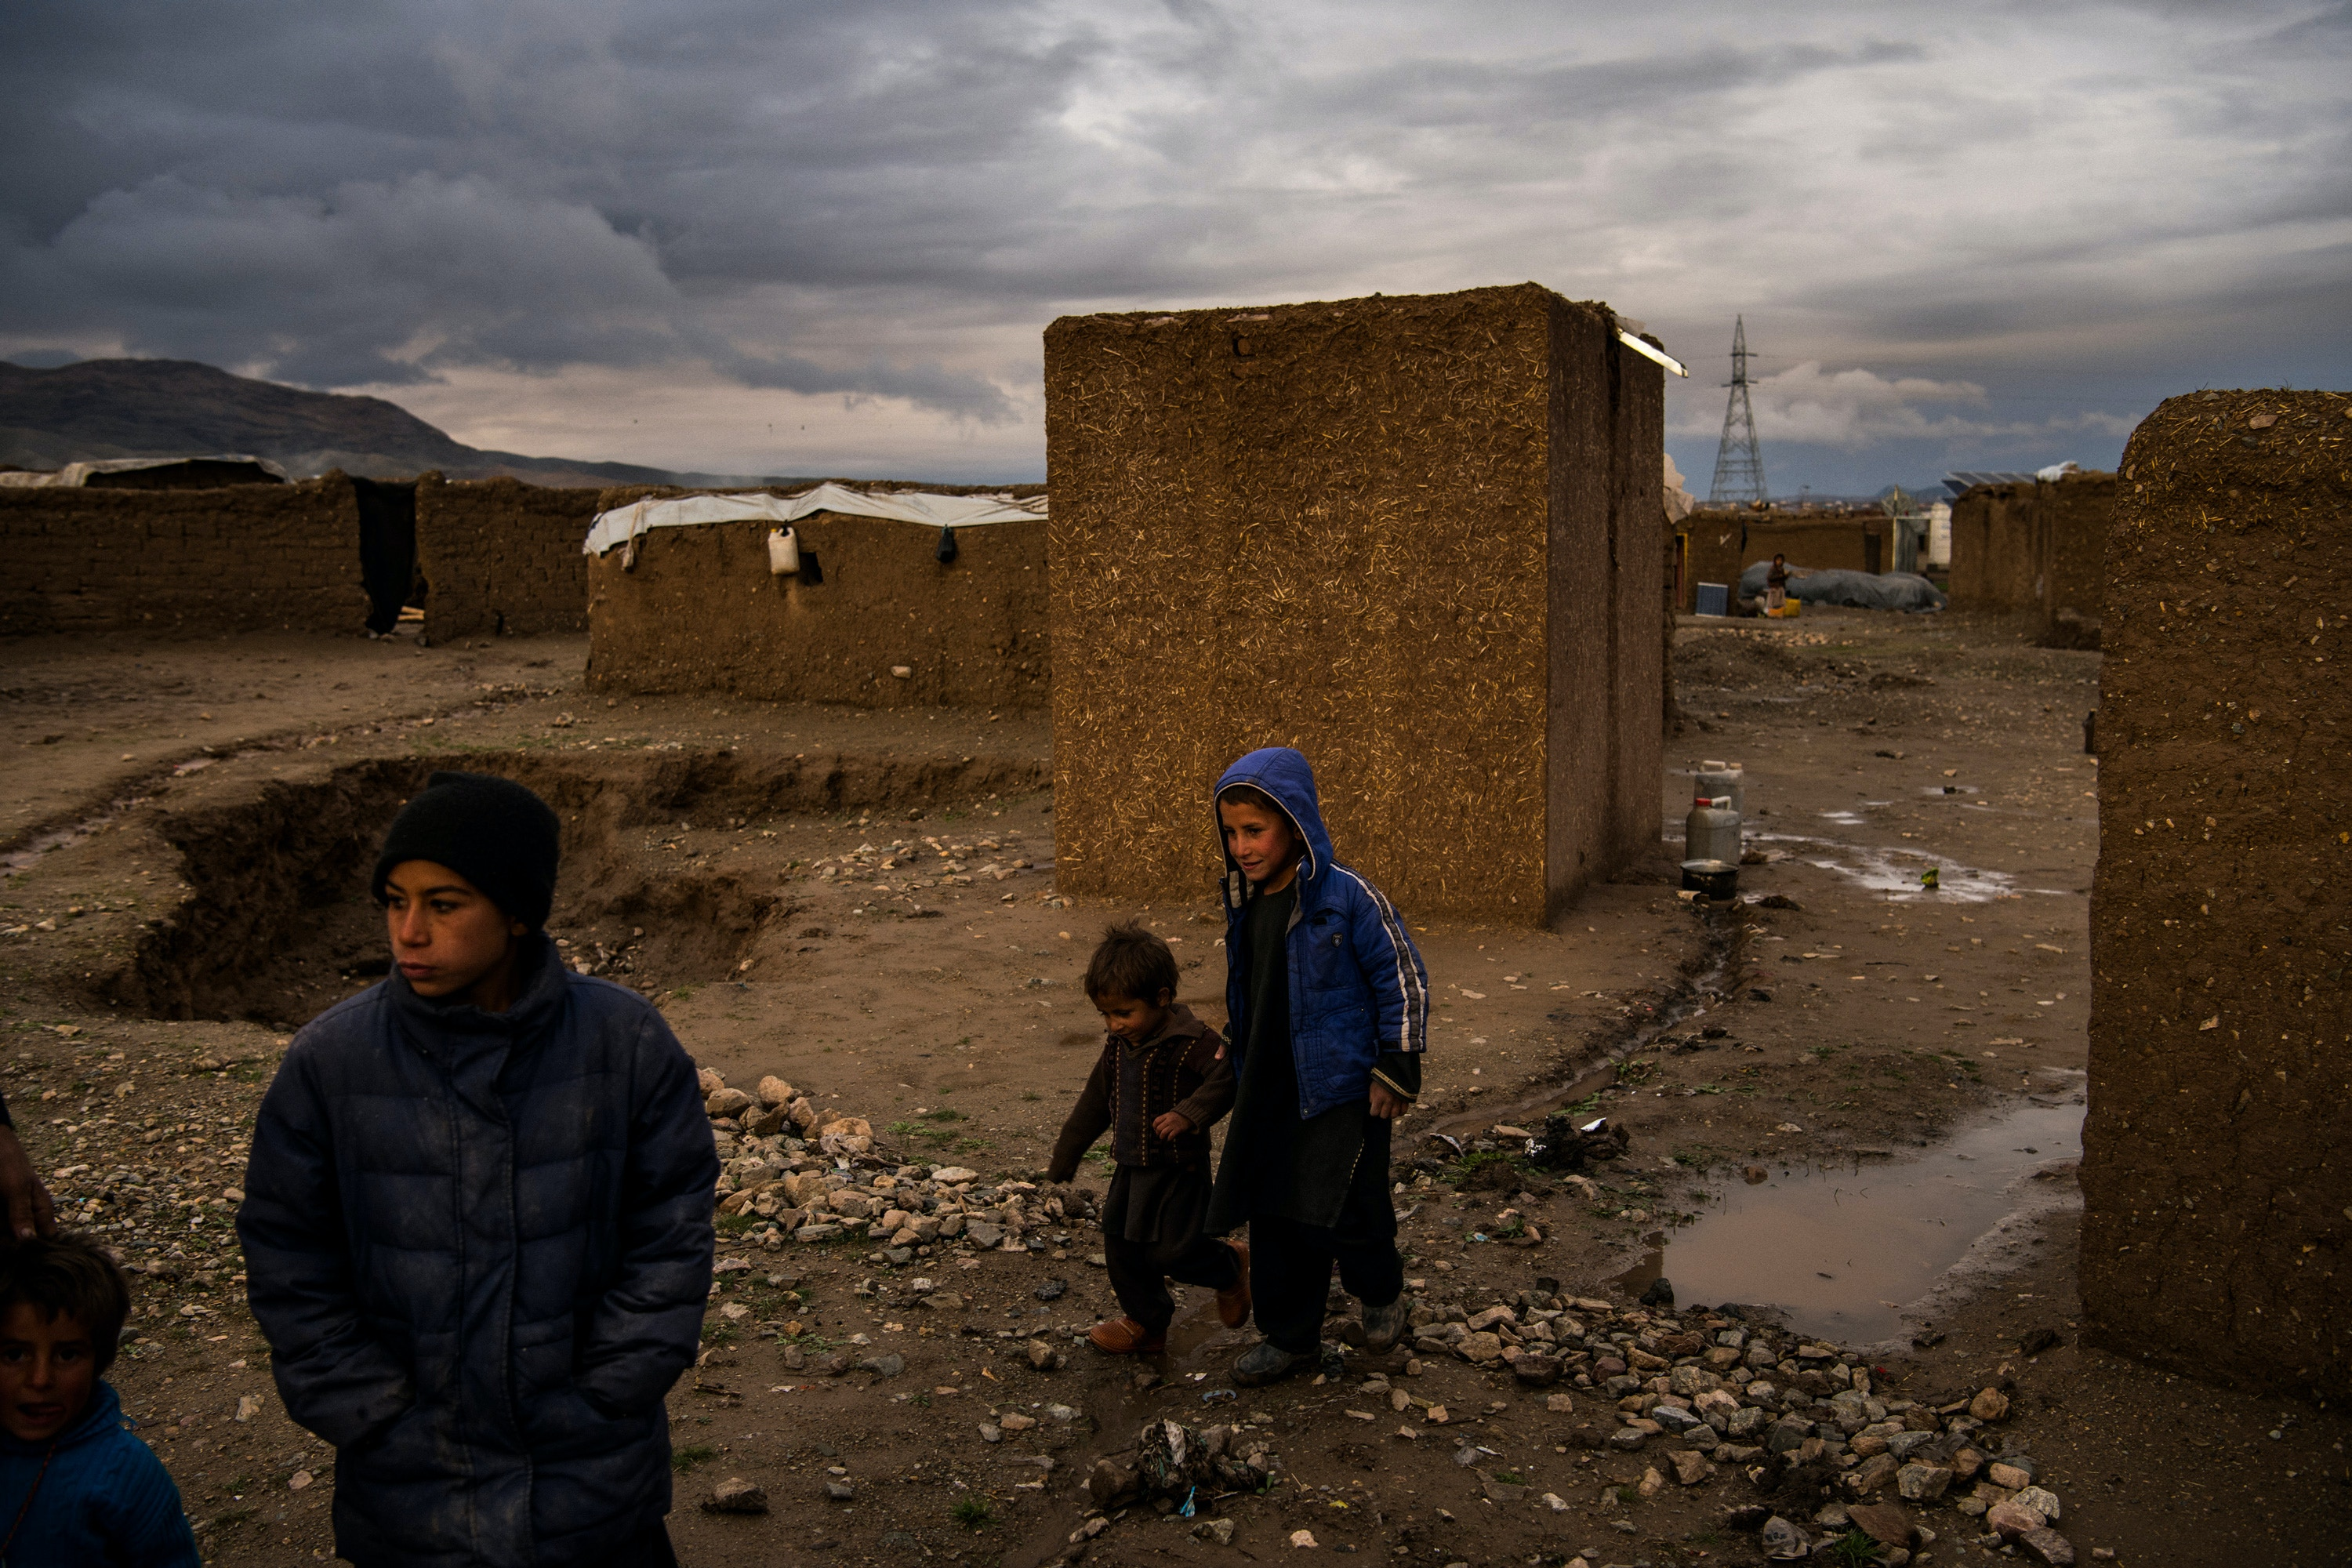 The Shahrak-e Sabz informal settlement, home to more than 10,000 families, mostly from Badghis Province to the north, who settled and built basic homes after fleeing fighting and drought in 2018. People like the displaced families living in Sahahrak-e Sabz are thought to be most at risk during the spread of the coronavirus in Afghanistan. Shahrak-e Sabz, is on the outskirts of Herat City, which is the current epicentre of the coronavirus outbreak in Afghanistan, with more than 50% of all of the country's positive cases. On this day, the country had an official count of 71 positive coronavirus cases.